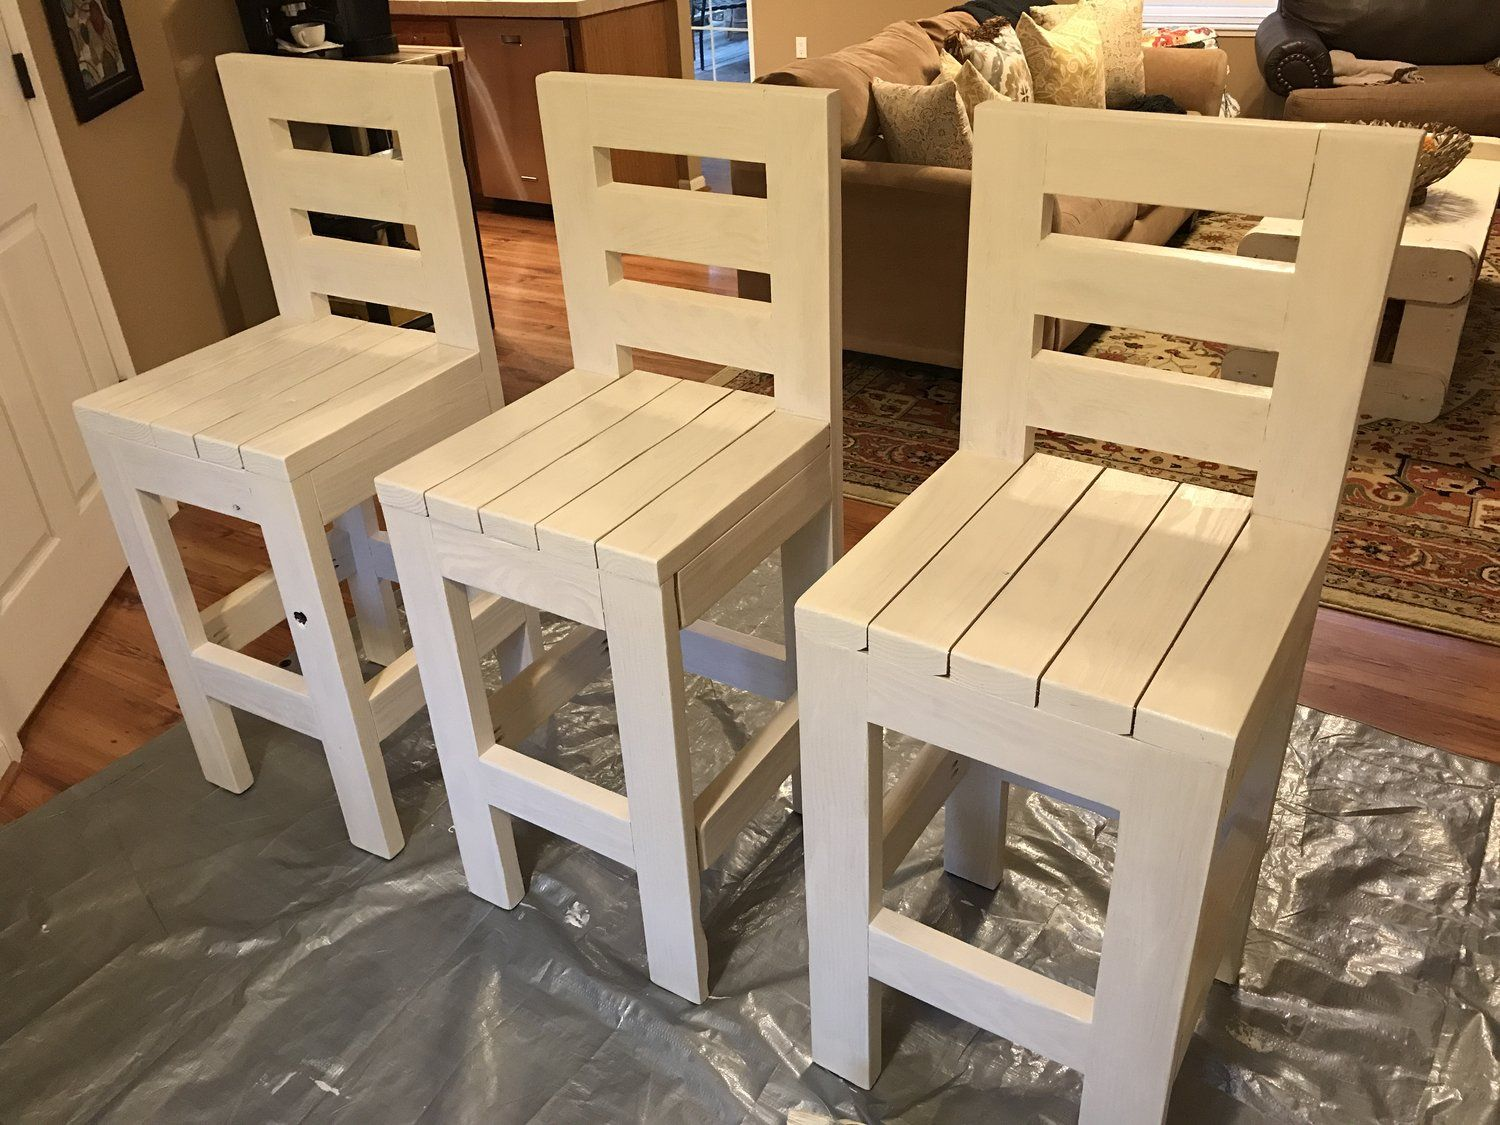 Admirable Farmhouse Bar Stools We Build These Are Very Sturdy And Add Gmtry Best Dining Table And Chair Ideas Images Gmtryco